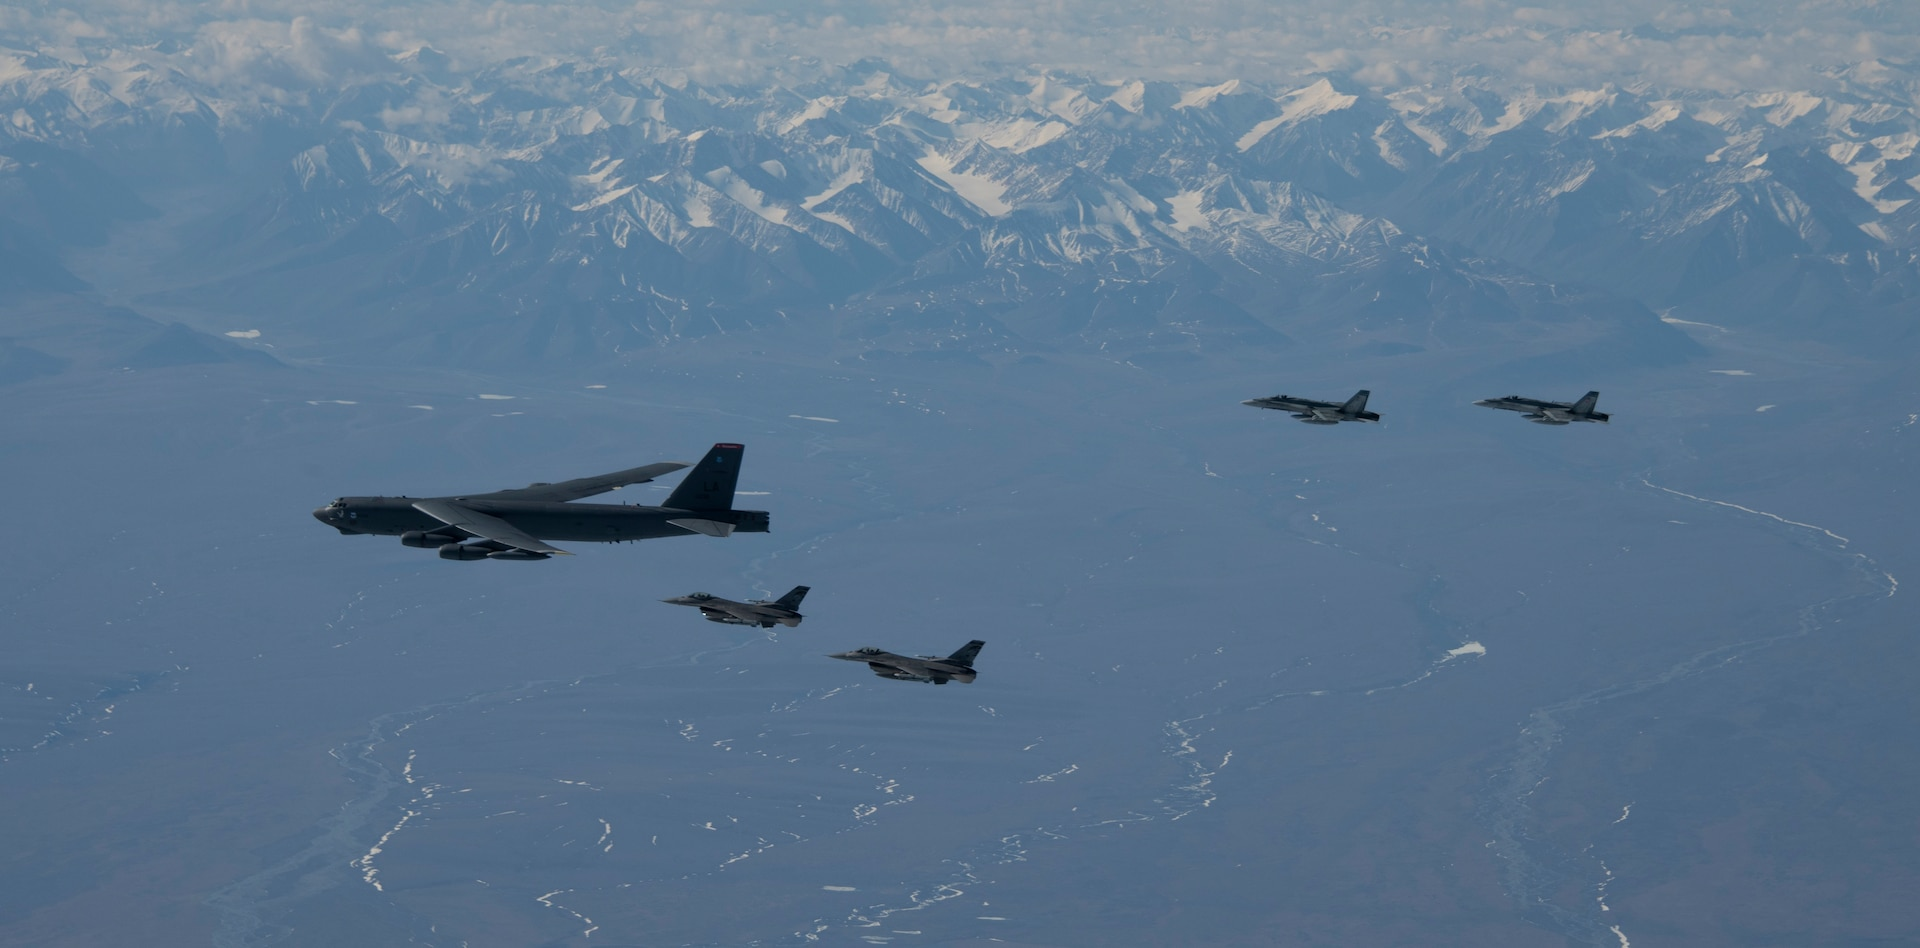 Royal Canadian Air Force CF-18 Hornet and United States Air Force F-16 Fighting Falcon fighter jets fly in formation with a United States Air Force B-52 Stratofortress over Alaska, during Exercise Amalgam Dart 21-1, June 15, 2021.